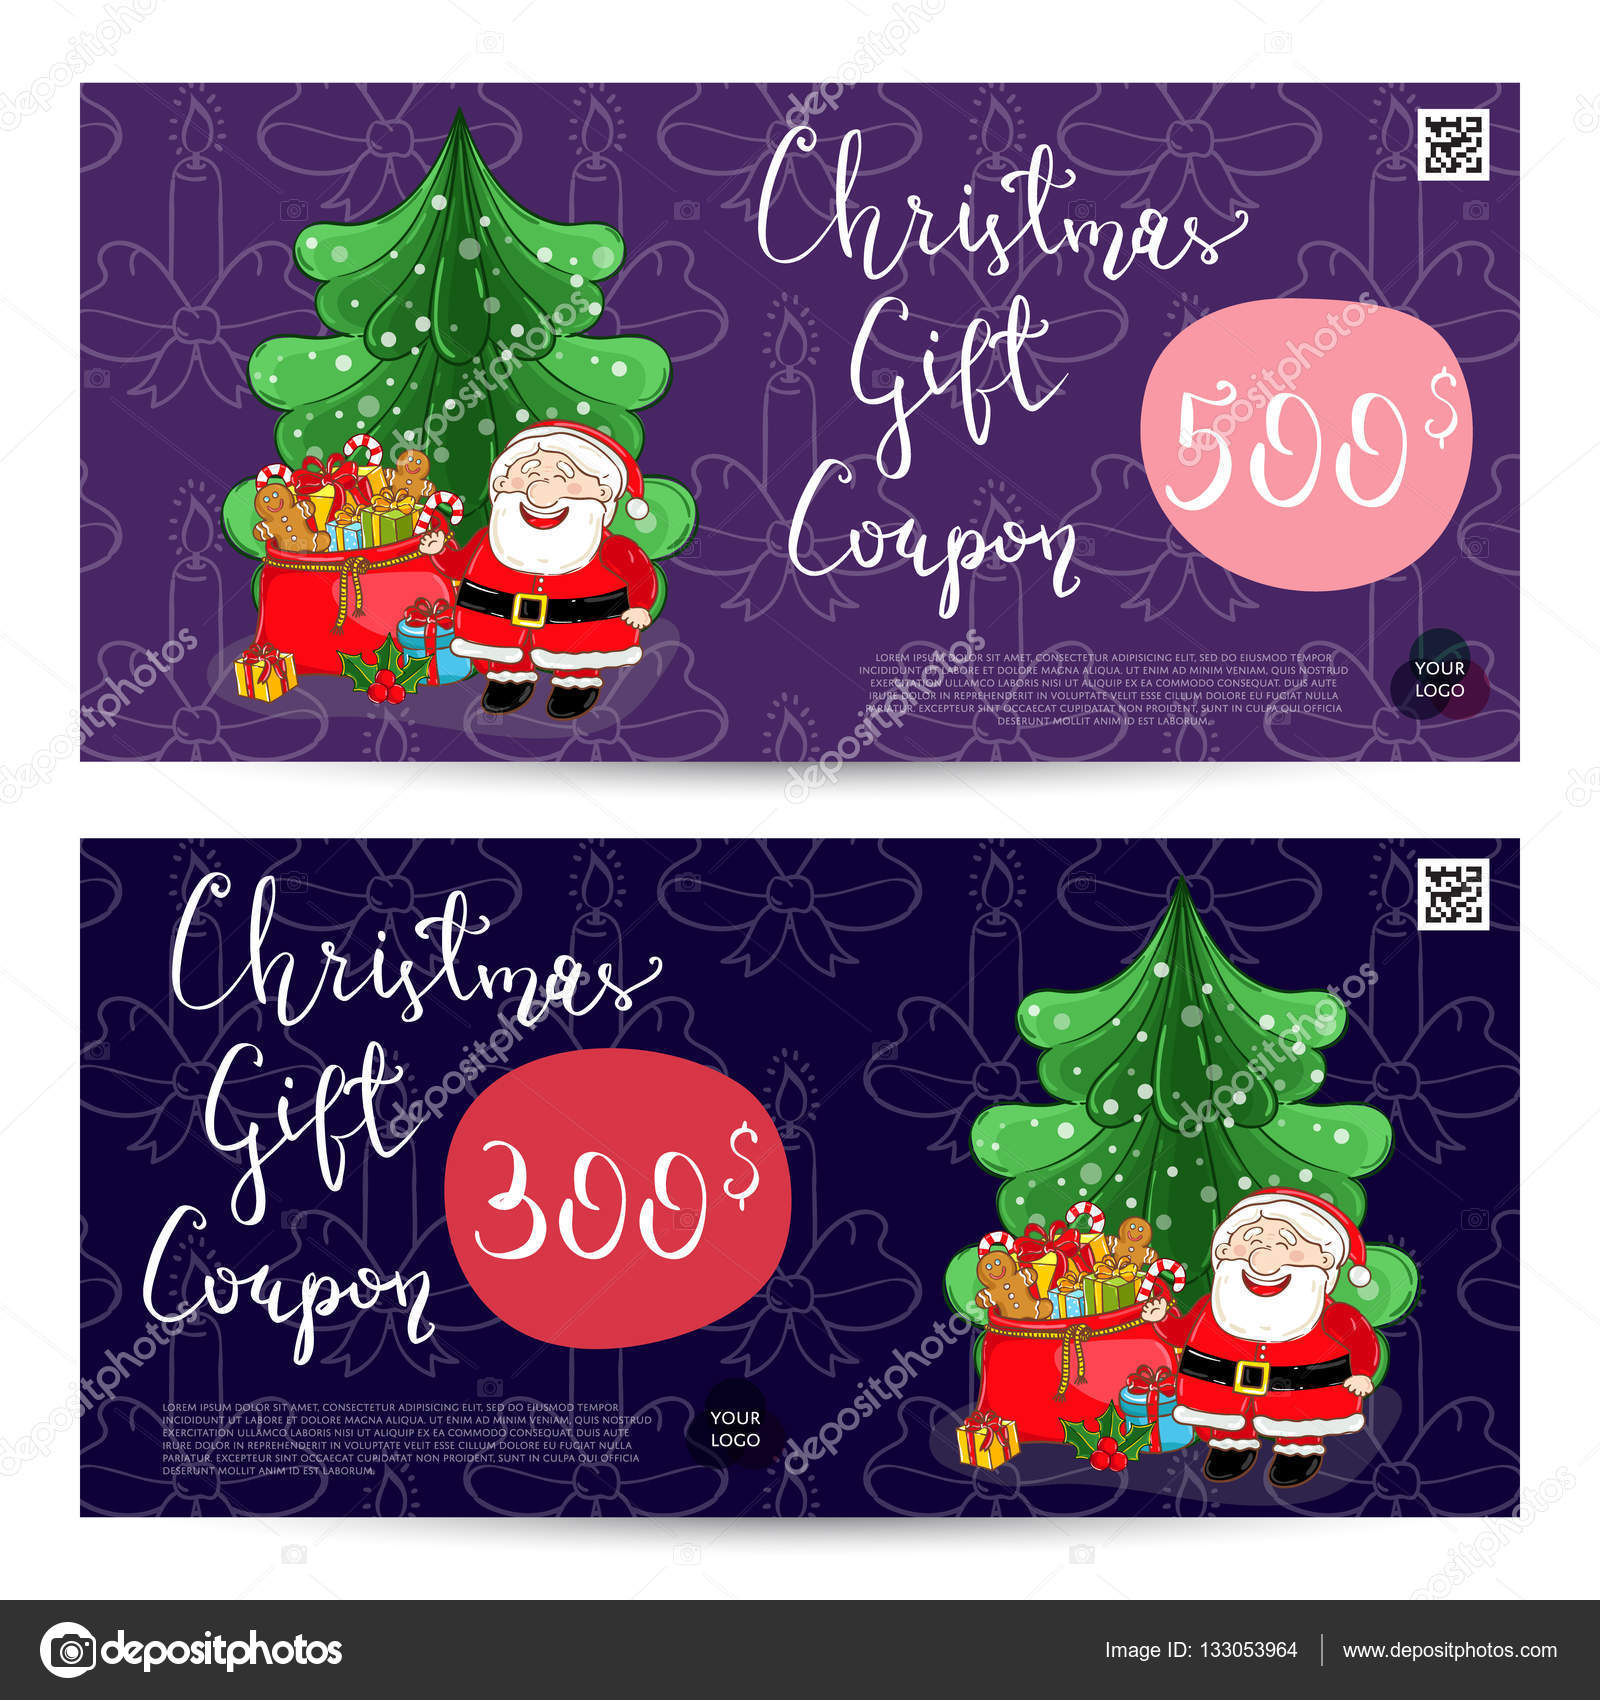 Christmas Gift Voucher Template. Gift Coupon With Xmas Attributes And  Prepaid Sum. Santa, Gifts, Christmas Tree, Gingerbread Cookie Cartoon  Vectors.